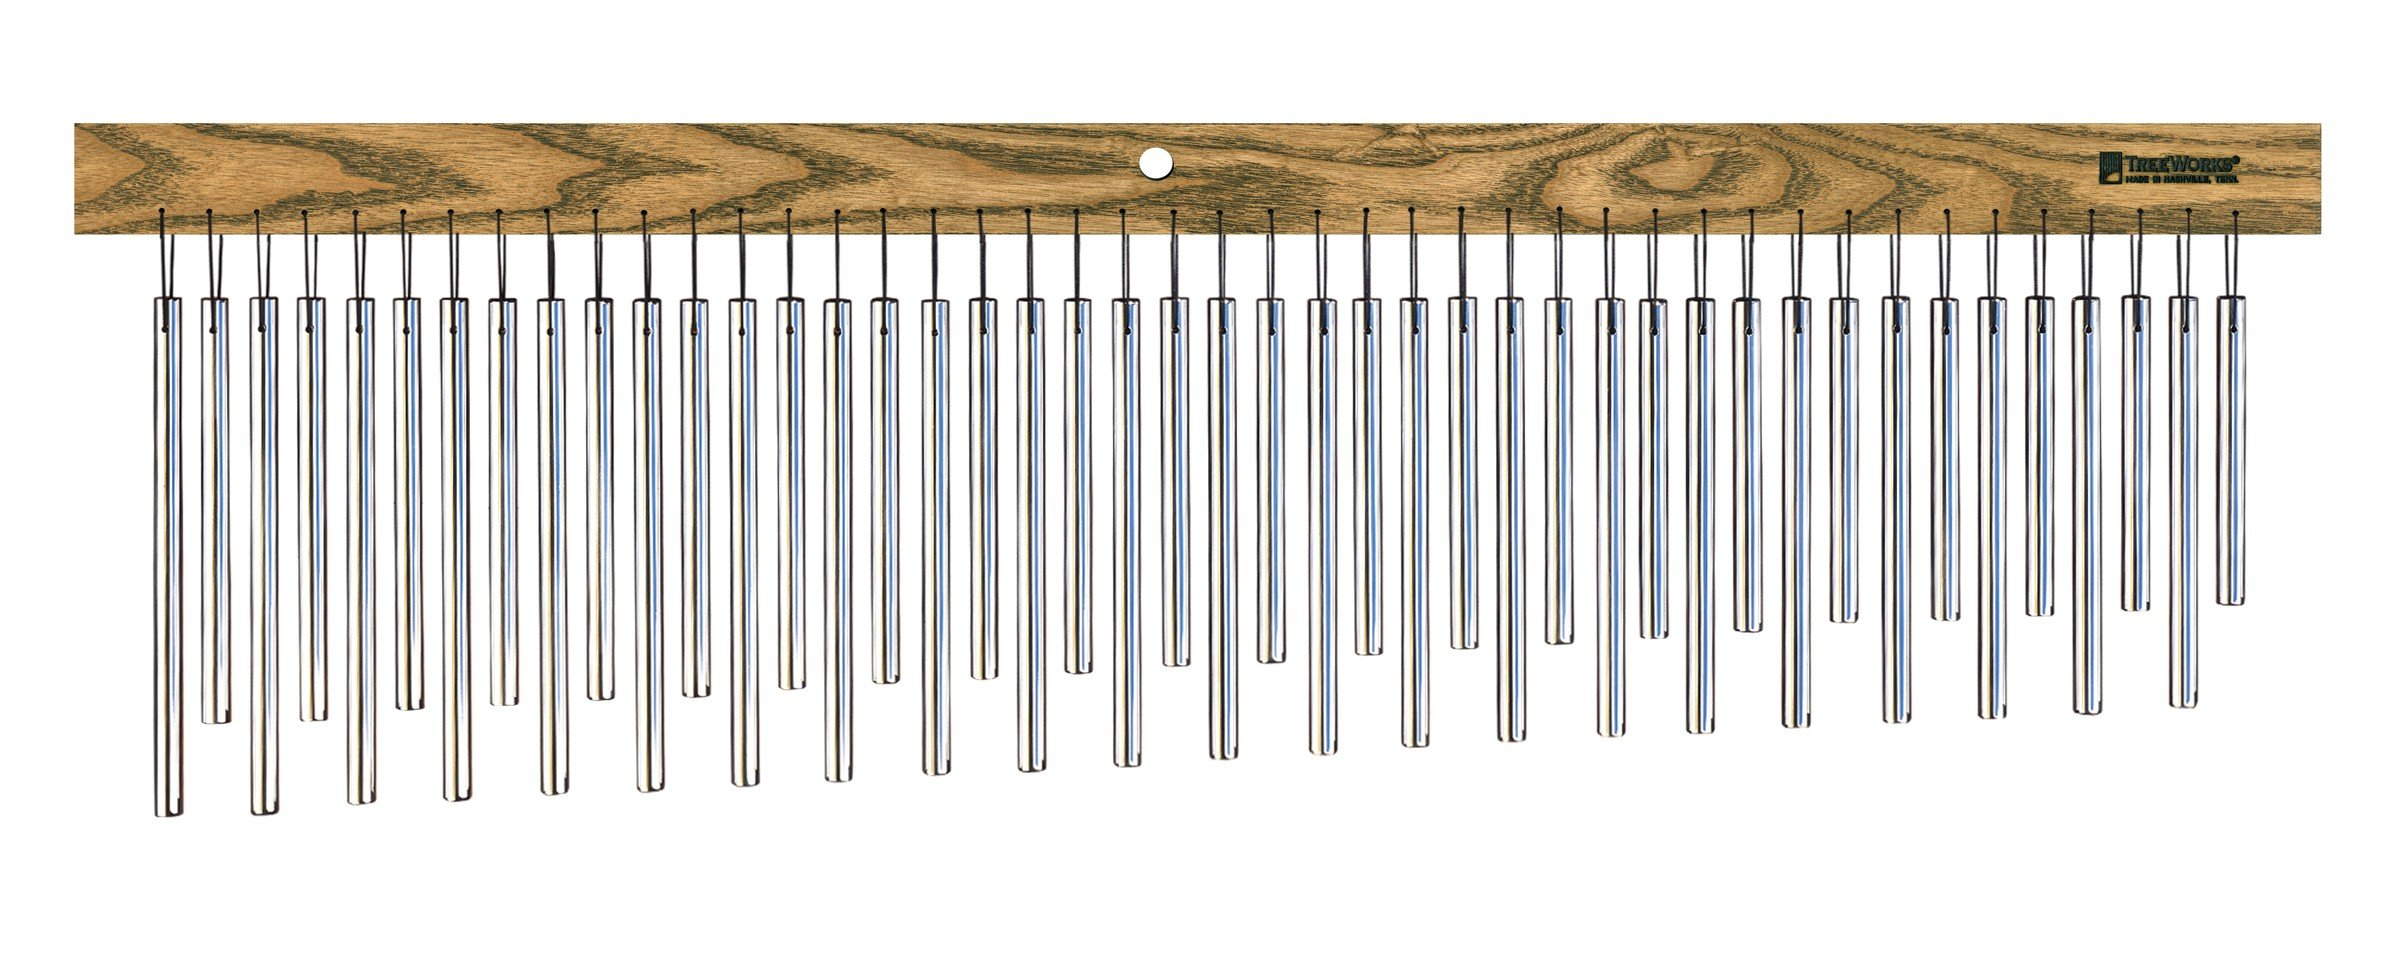 TreeWorks Chimes TRE555 Made in USA DreamTree Extra Large Single Row Bar Chime with Chorus Effect Tuning (VIDEO) by TreeWorks Chimes